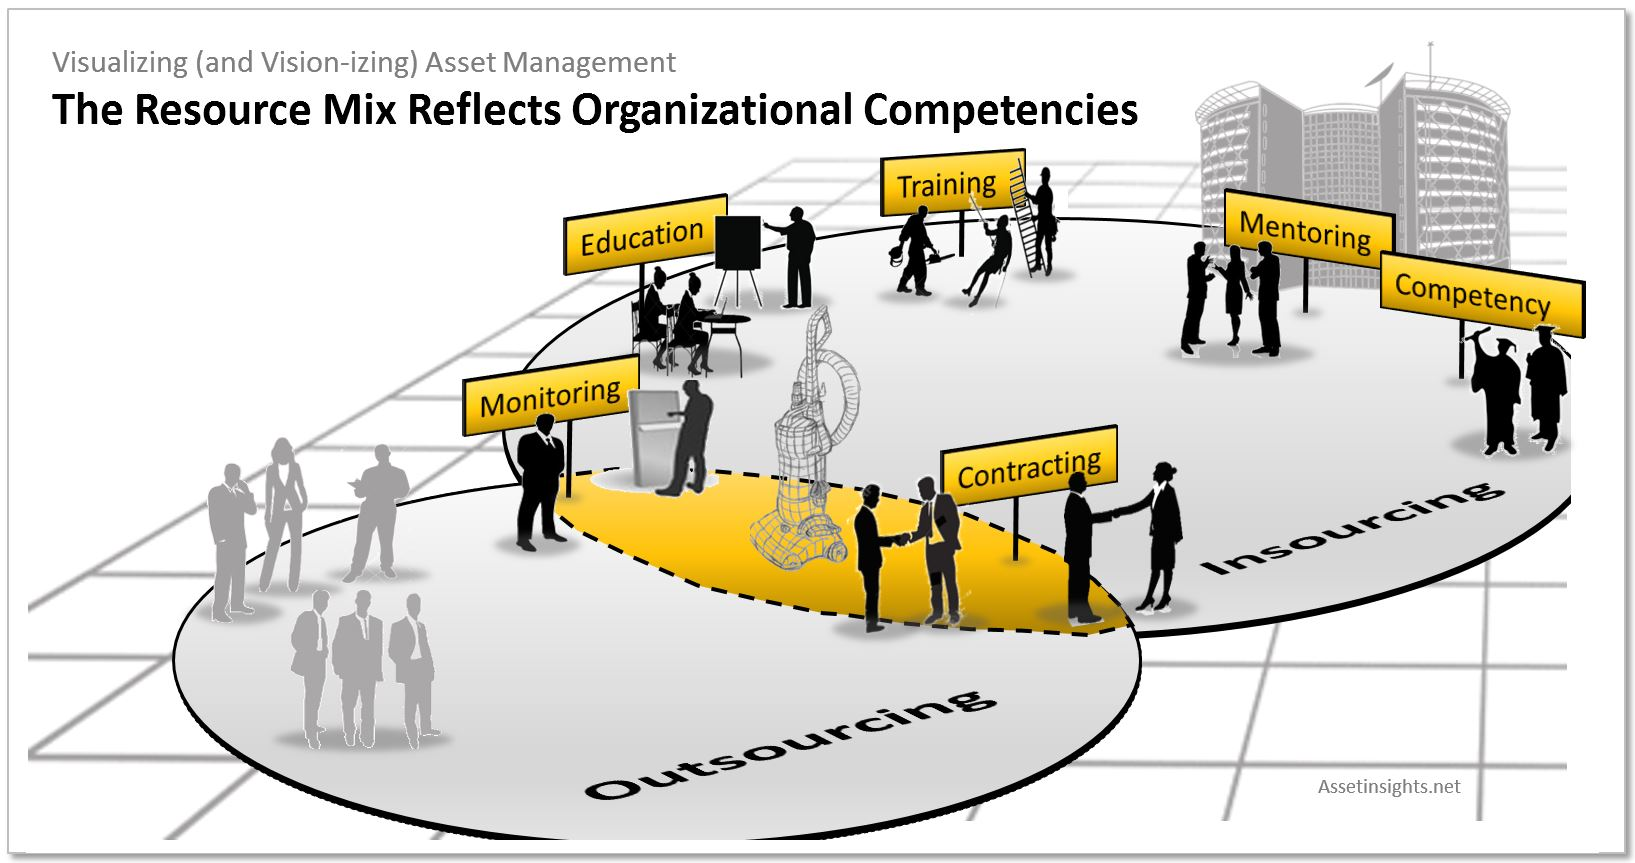 he resource mix should reflect the organization's competencies, which will evolve over time with education, training, mentoring and experience of the team